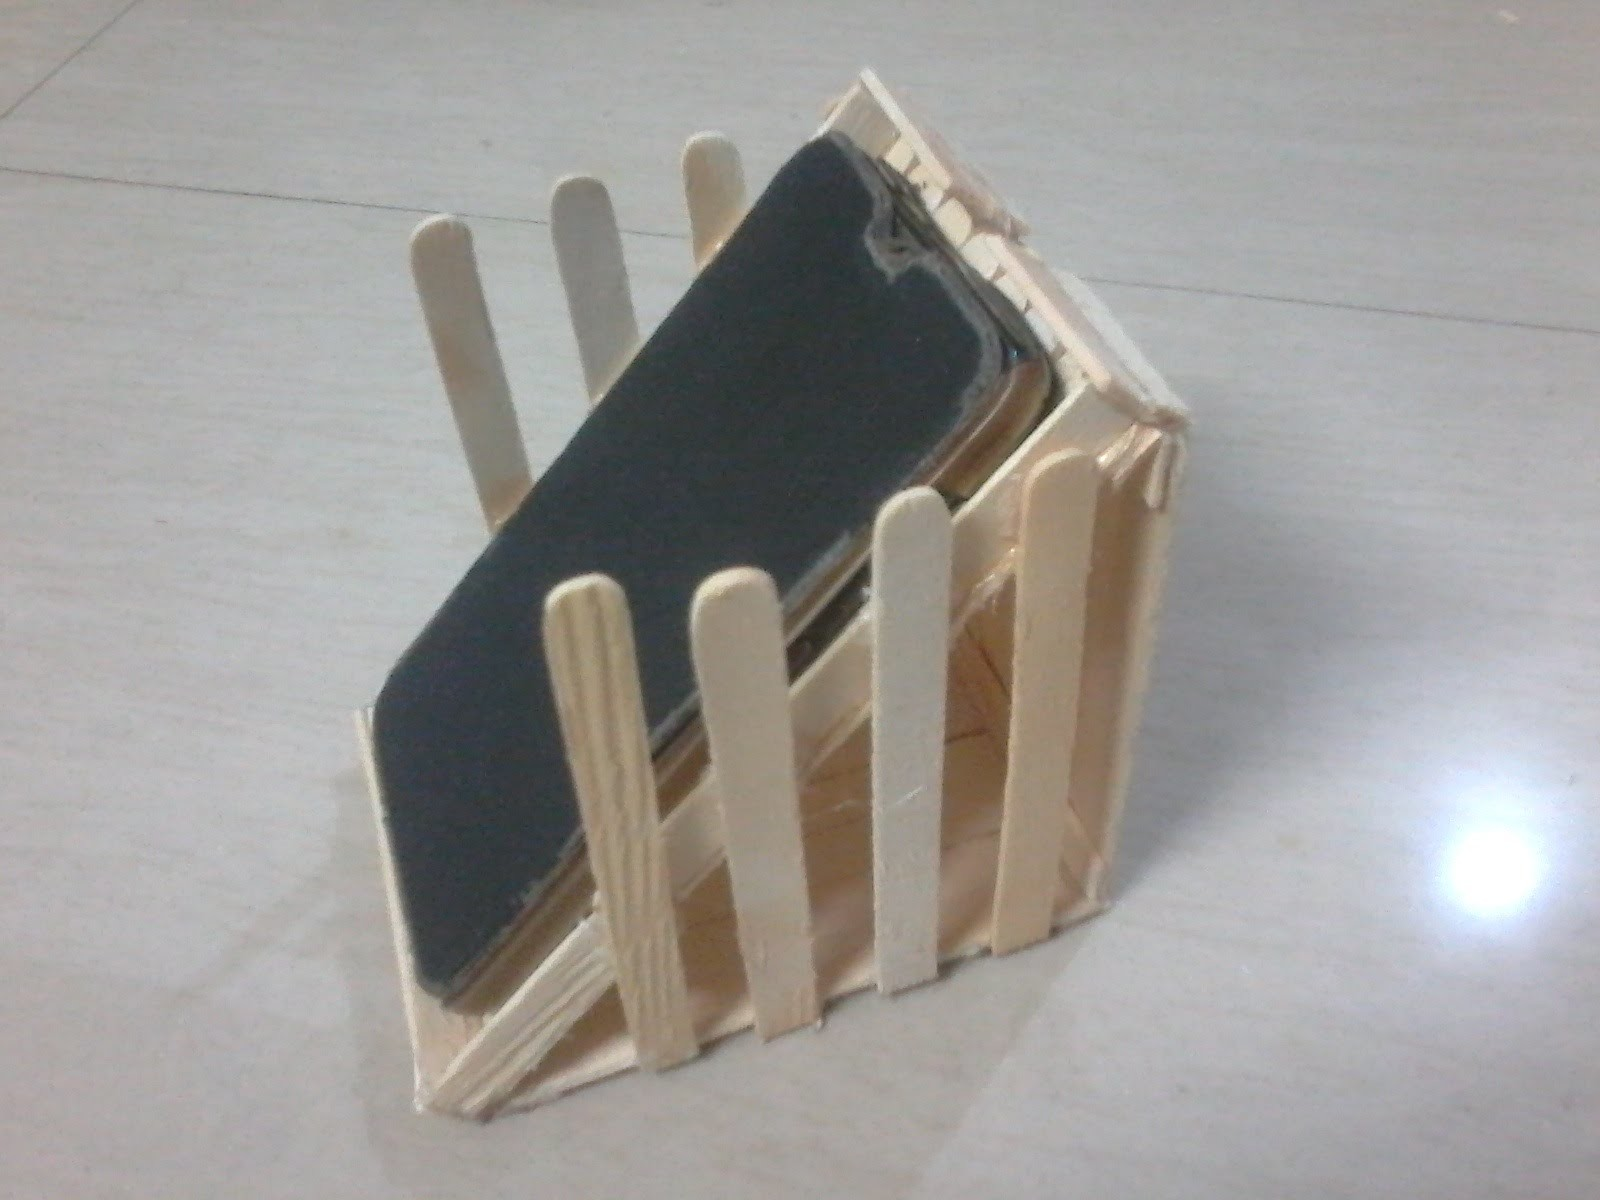 Diy how to make mobile stand beach bench model using for Designs using ice cream sticks